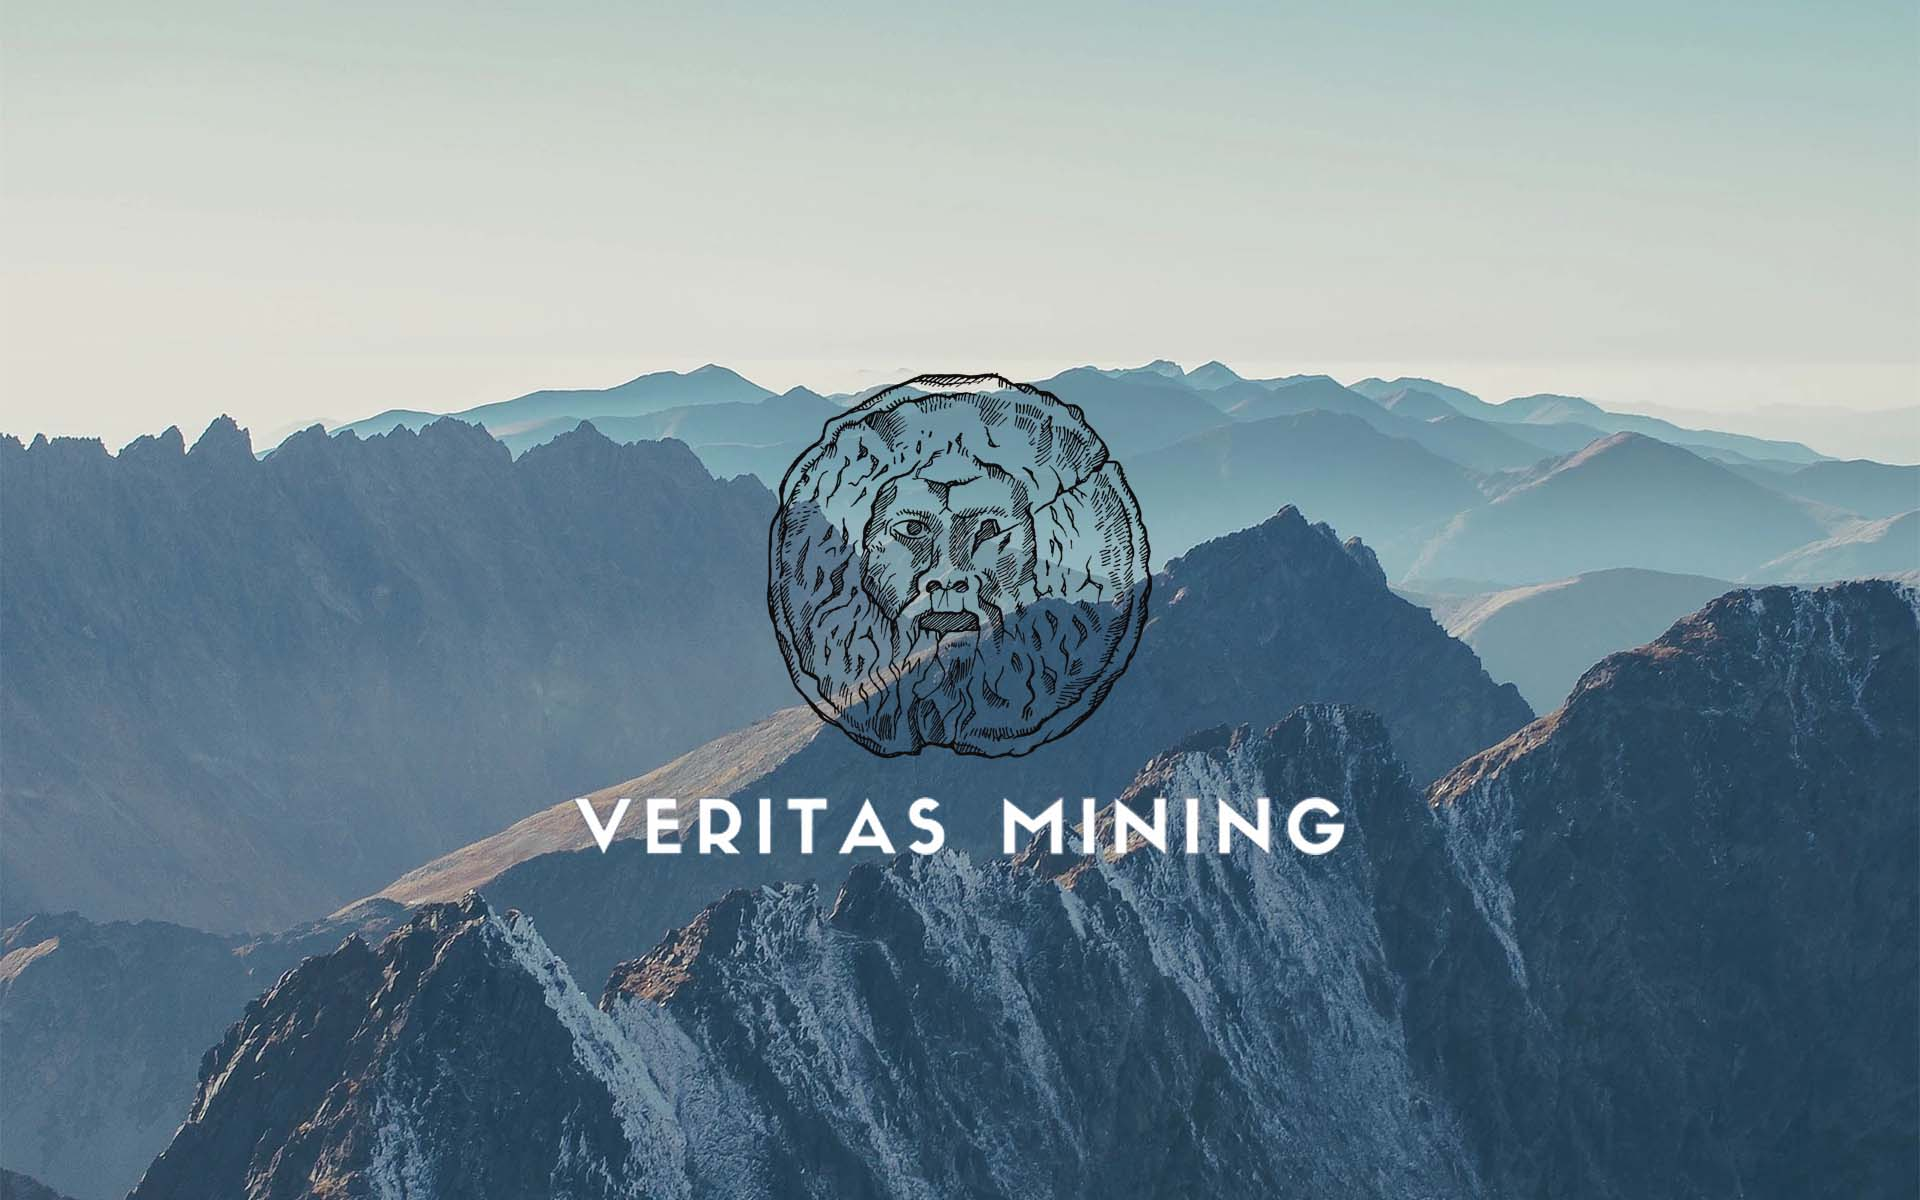 Veritas Mining ICO Underway – Promises Token Holders ROI Within 6 Months